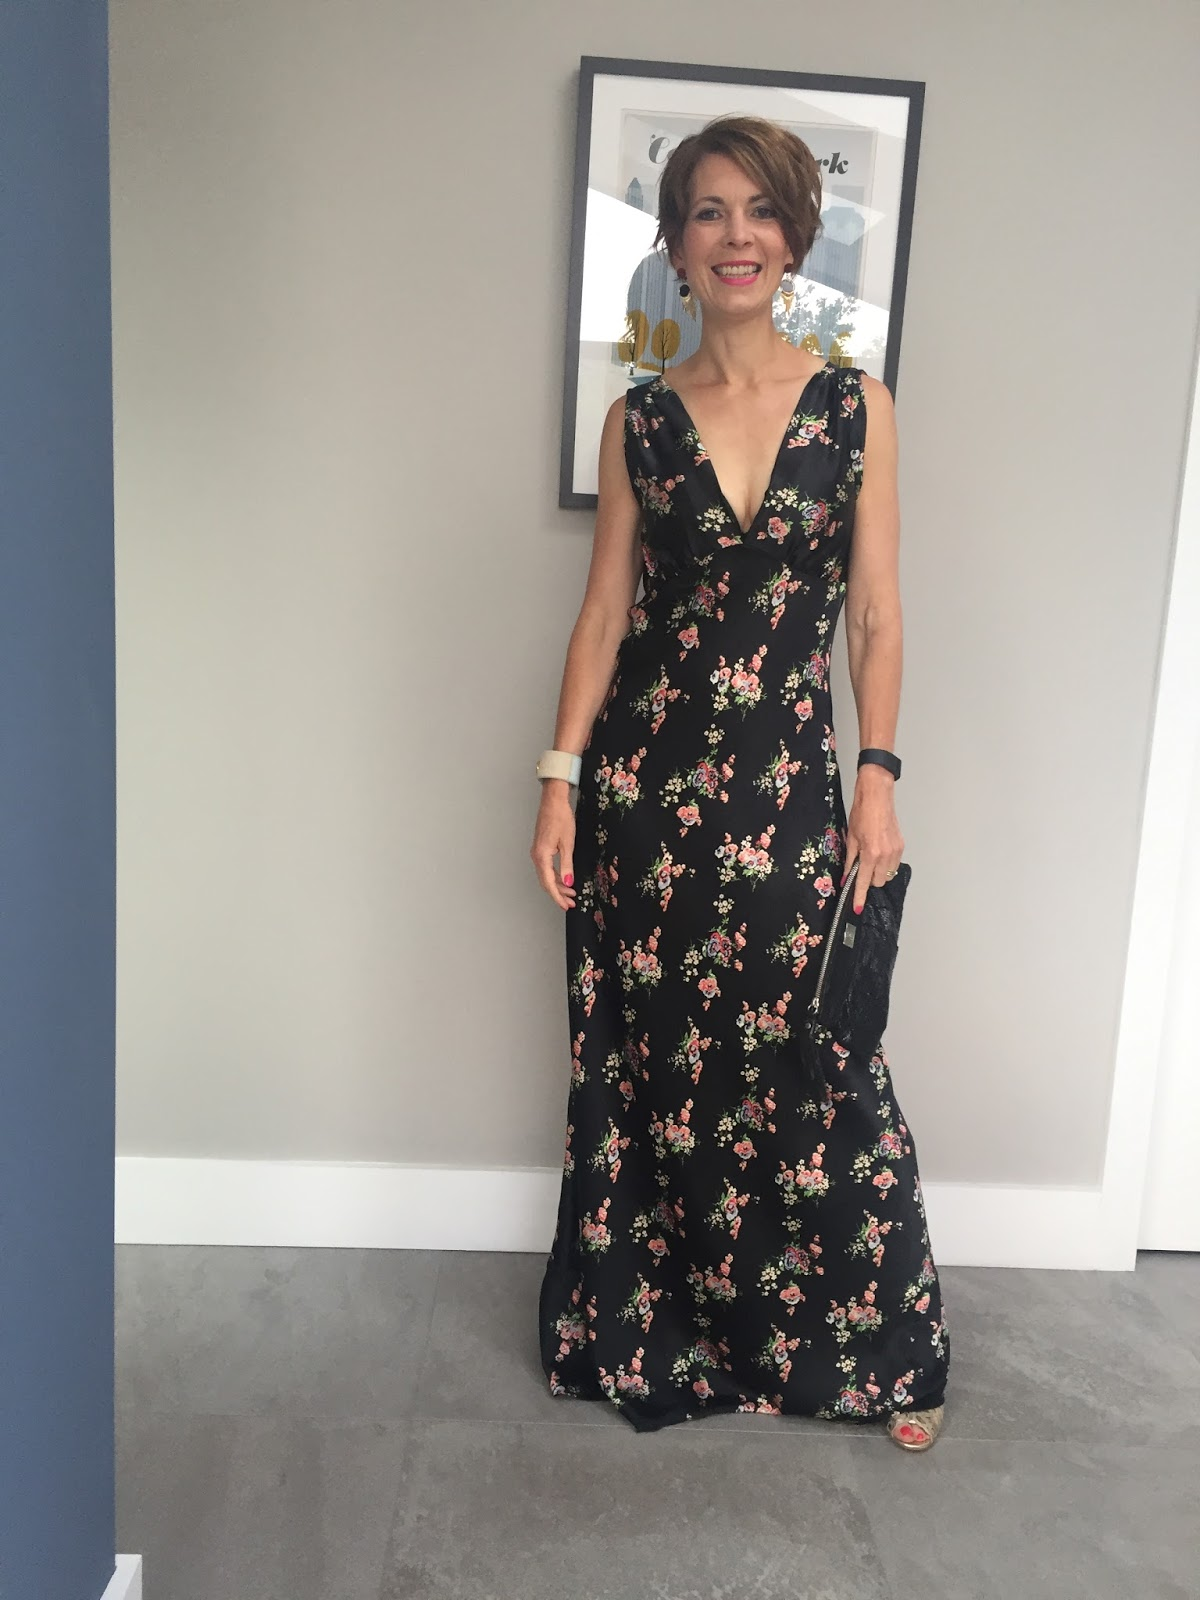 The Topshop Floral Length Maxi Dress – fit for a ball or the beach